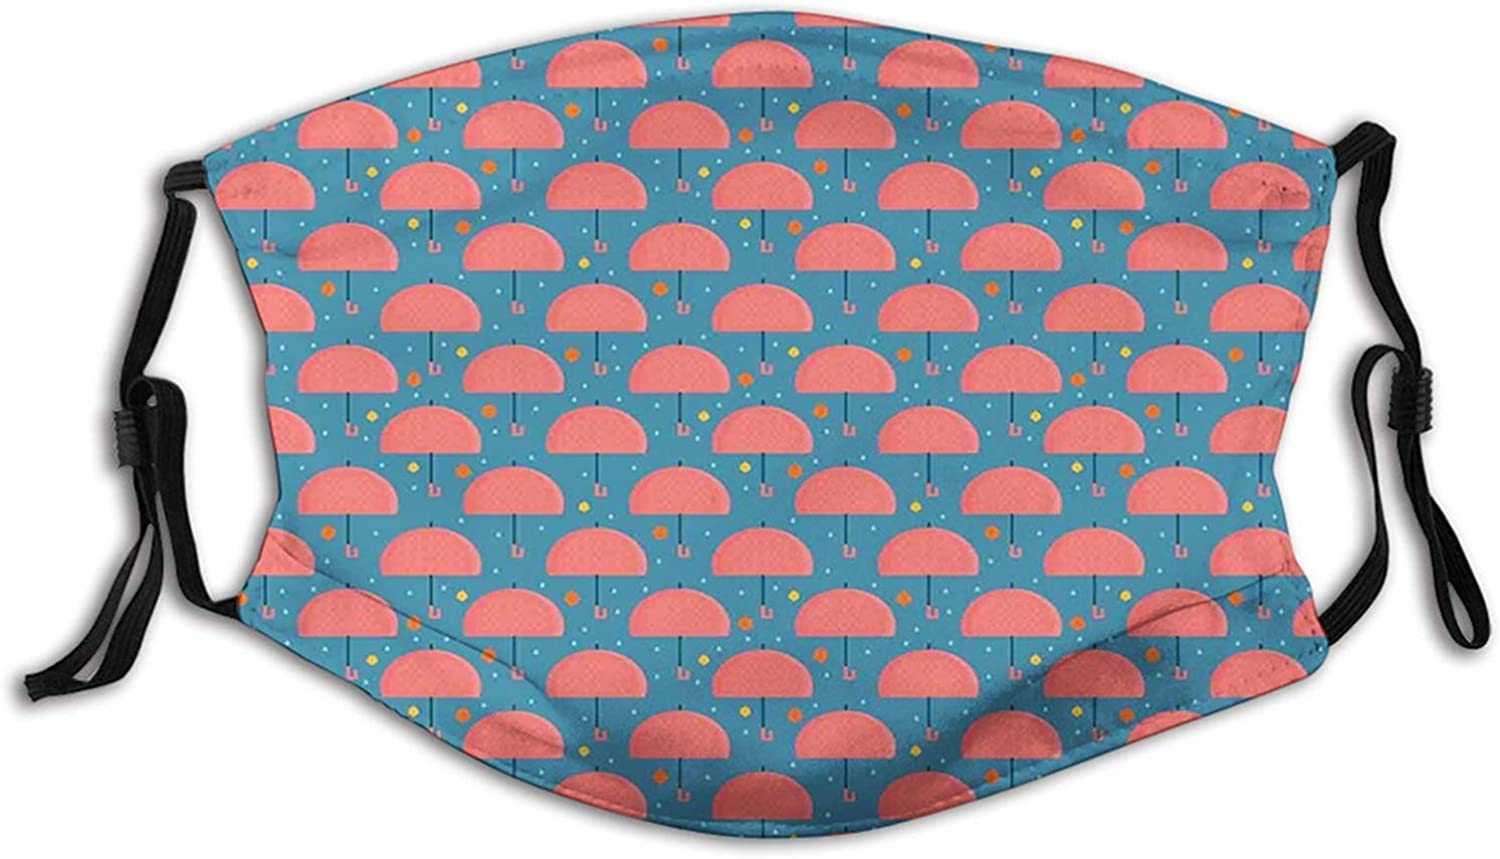 Mouth Face Mask Anti Breathable Absorb Sweat Reusable Masks for Adults Outdoor Umbrella, Autumn Foliage and Raindrops with Cartoon Style Parasol Pattern, Dark Coral Orange and Blue